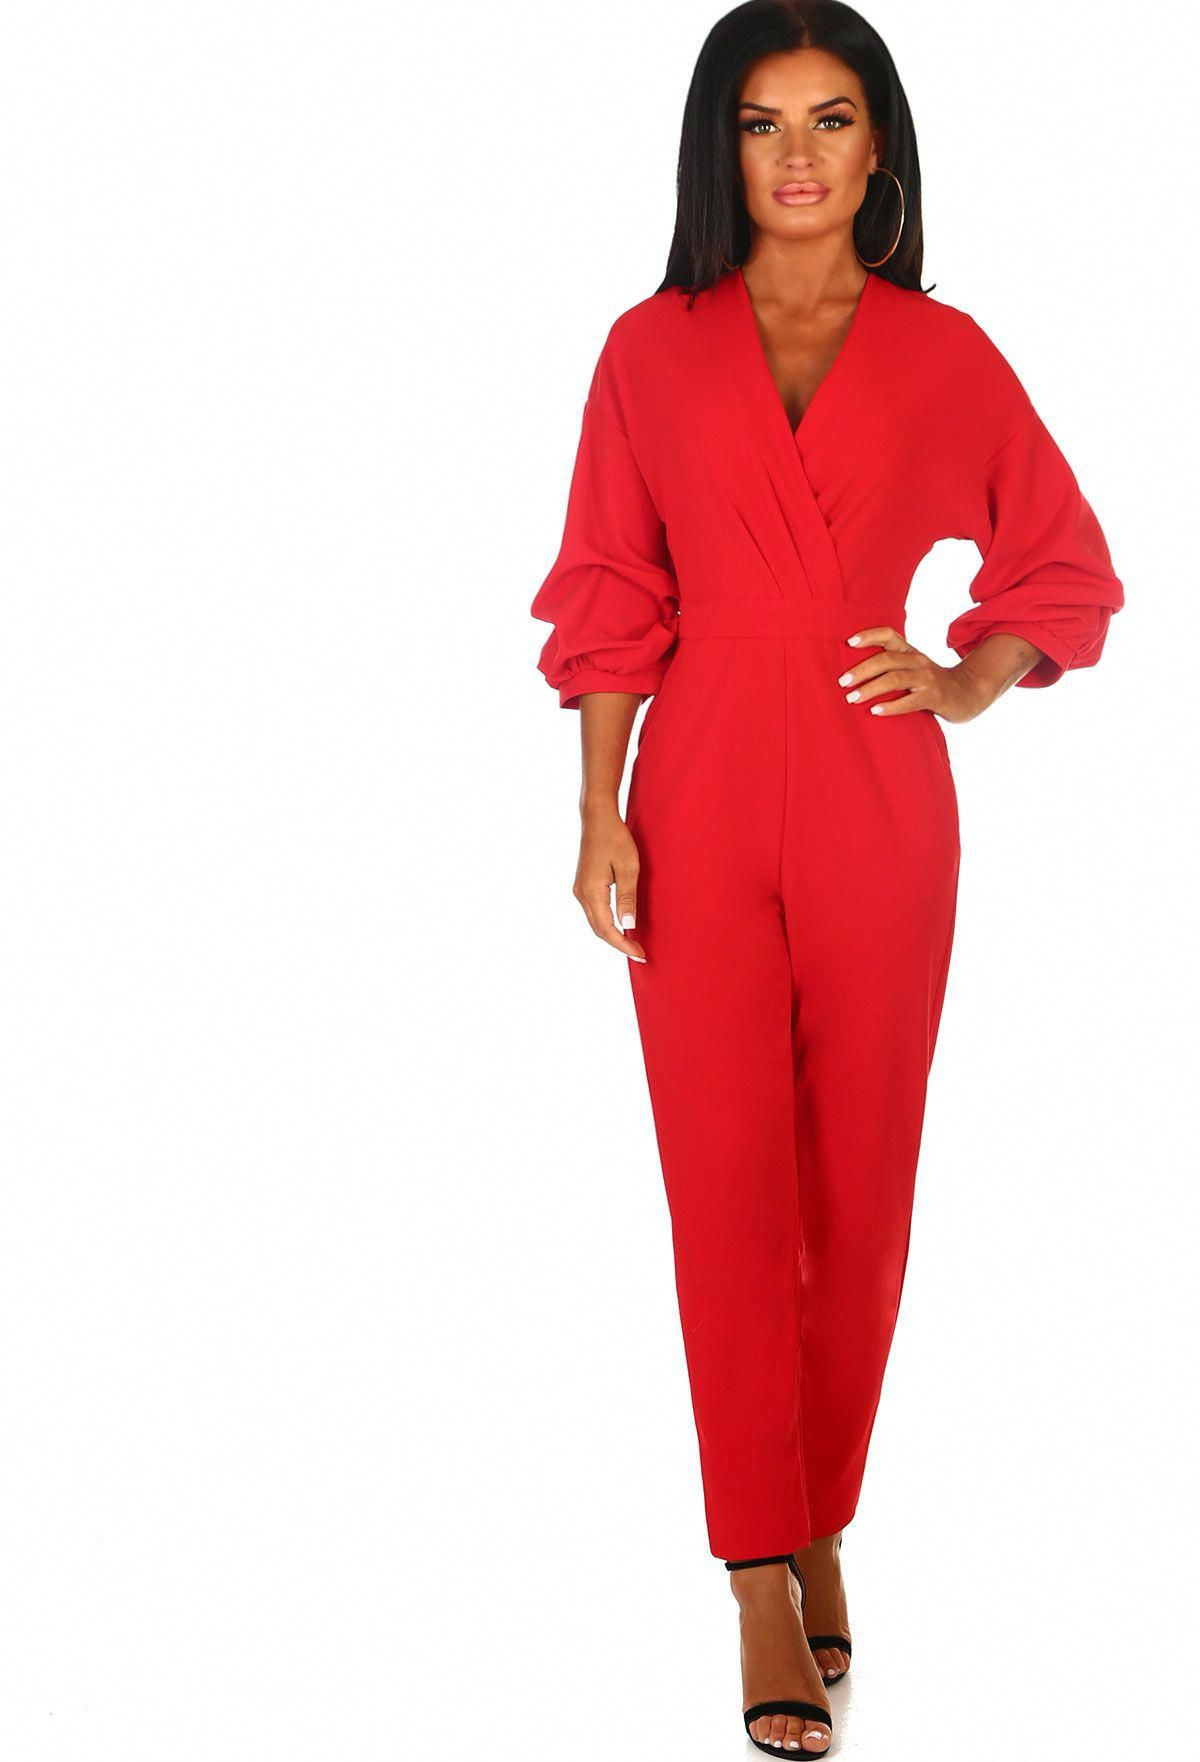 7bd1d4fa456 Shop women s jumpsuits at Pink Boutique - get your fix of going out  jumpsuits and casual jumpsuits with UK Next Day Delivery.